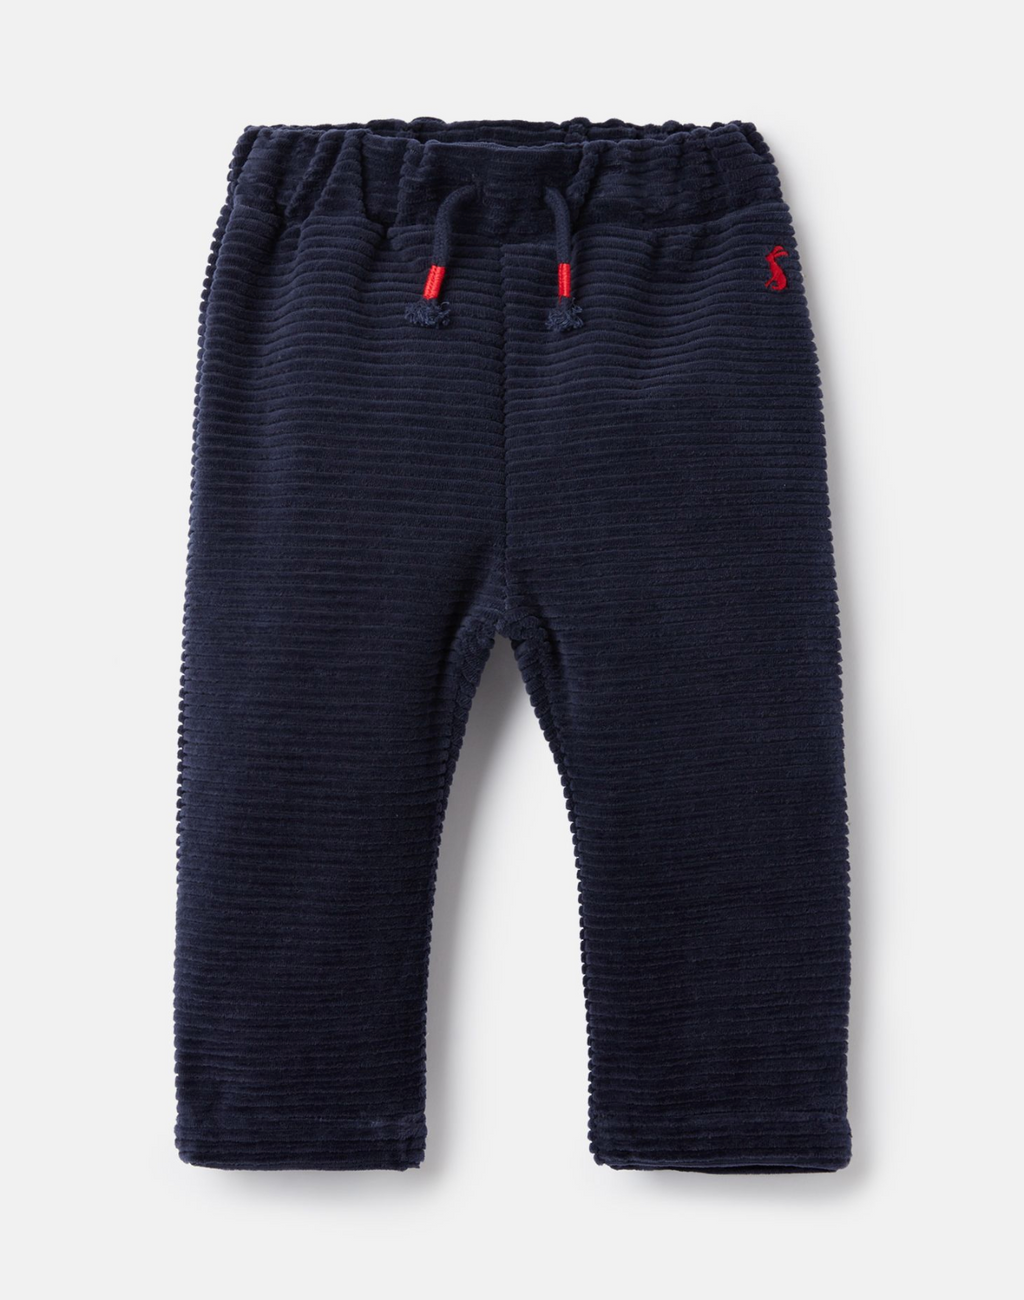 Ace Textured Jogger | Joules